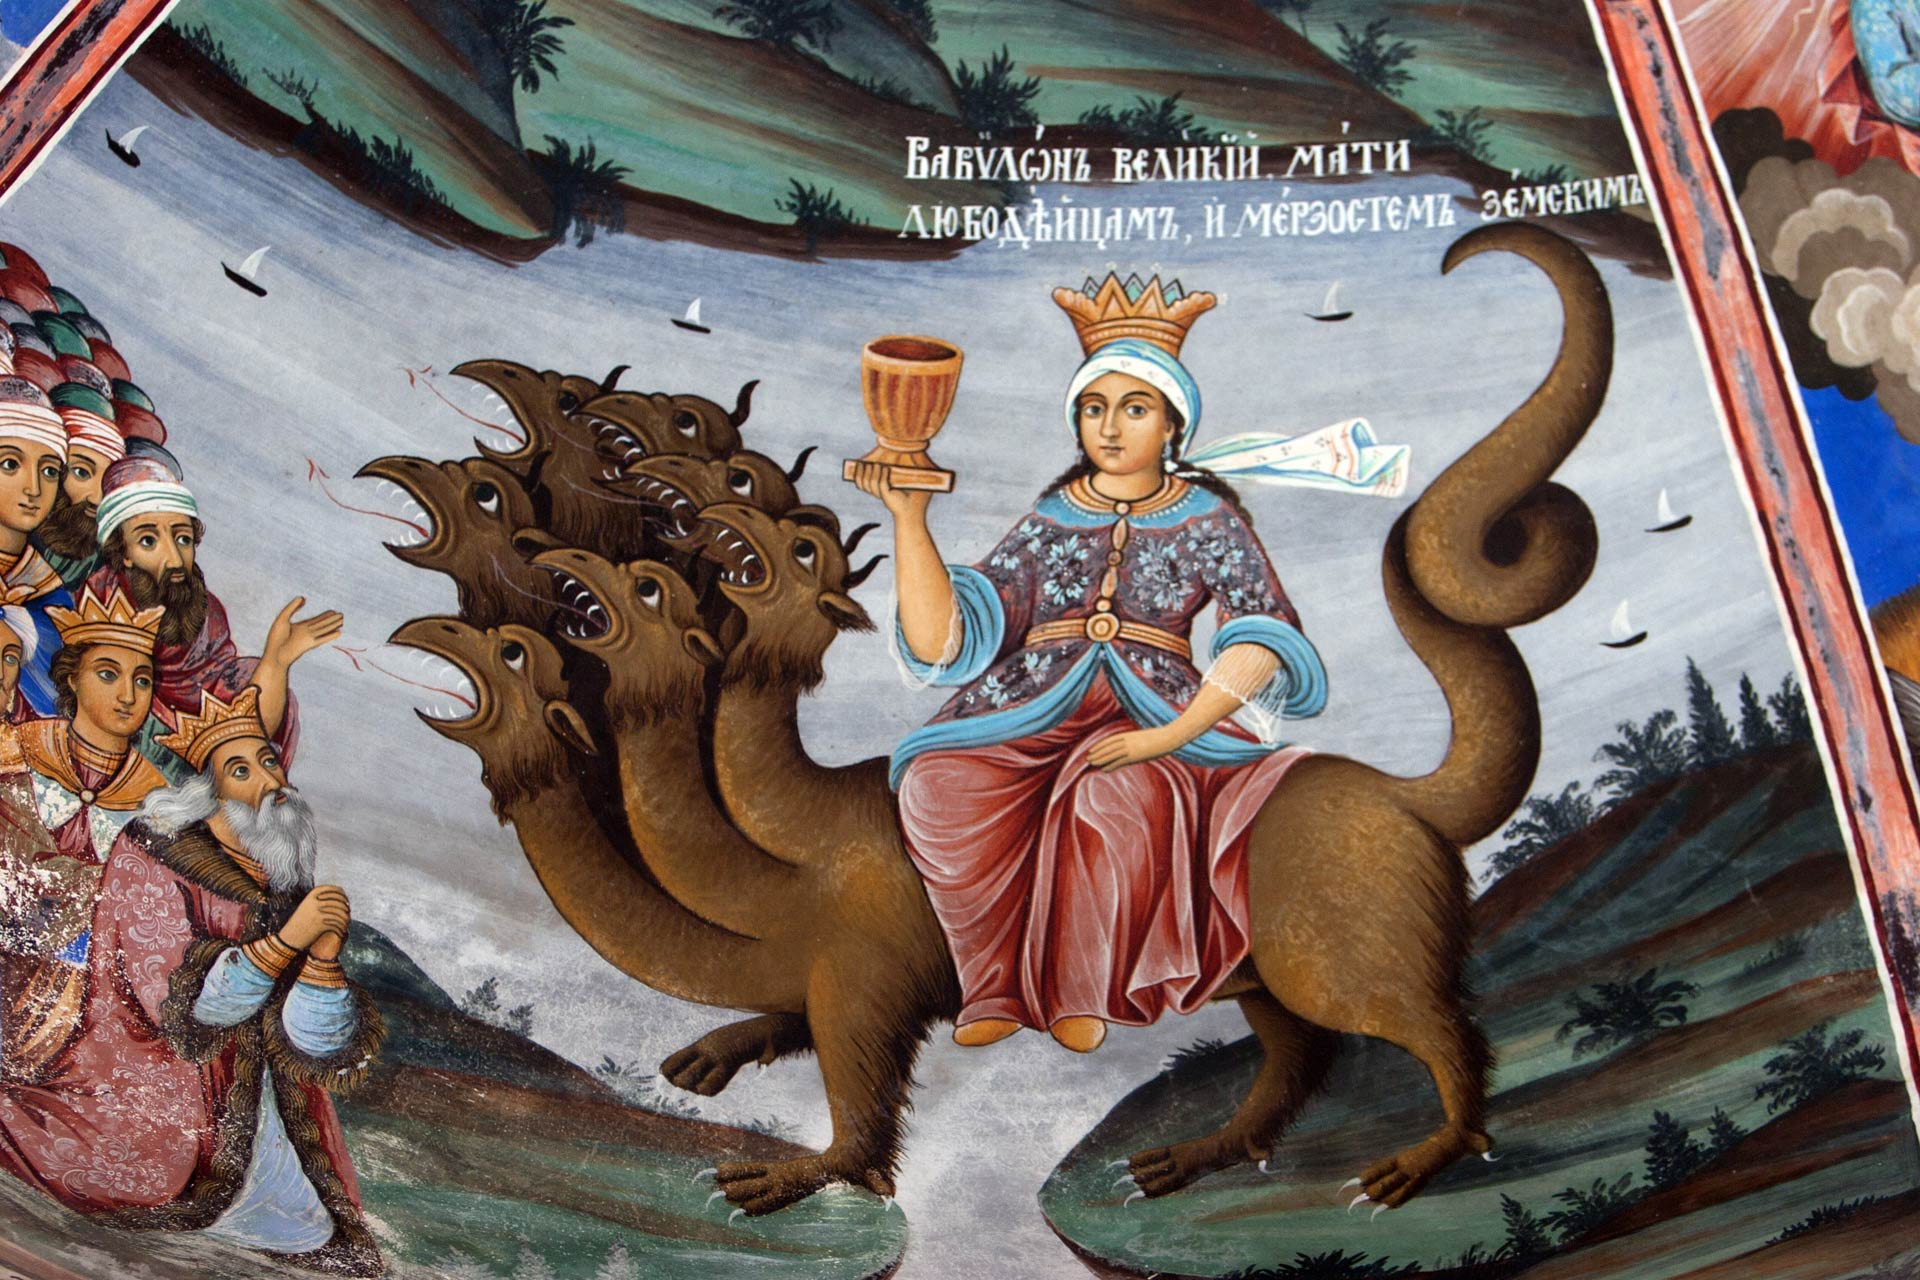 Paintings by Zahari Zograf on the outer walls of the Rila Monastery, Blagoevgrad, Bulgaria